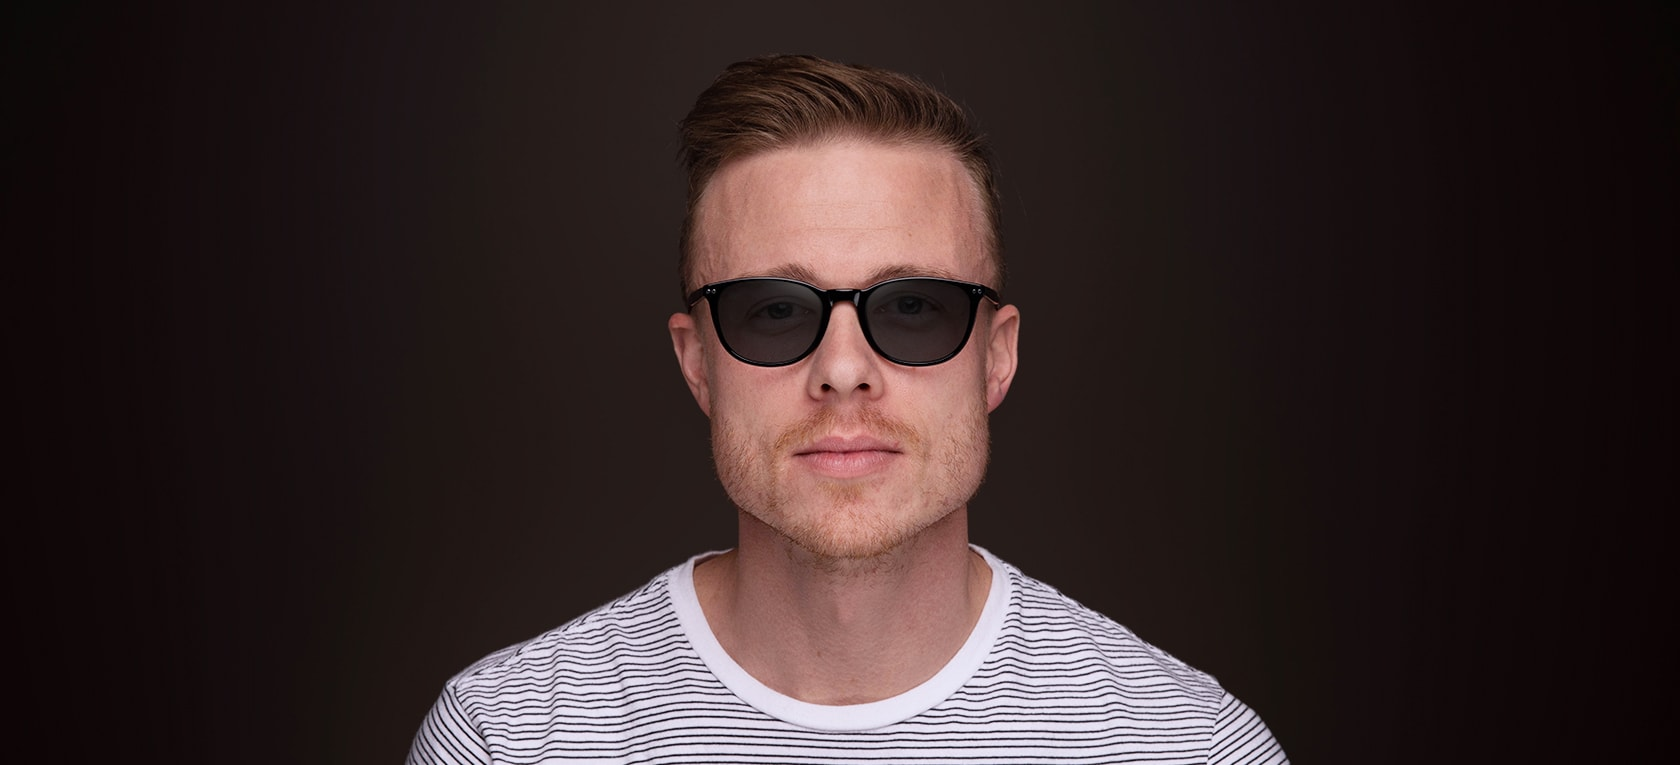 Image of model wearing Heber frames